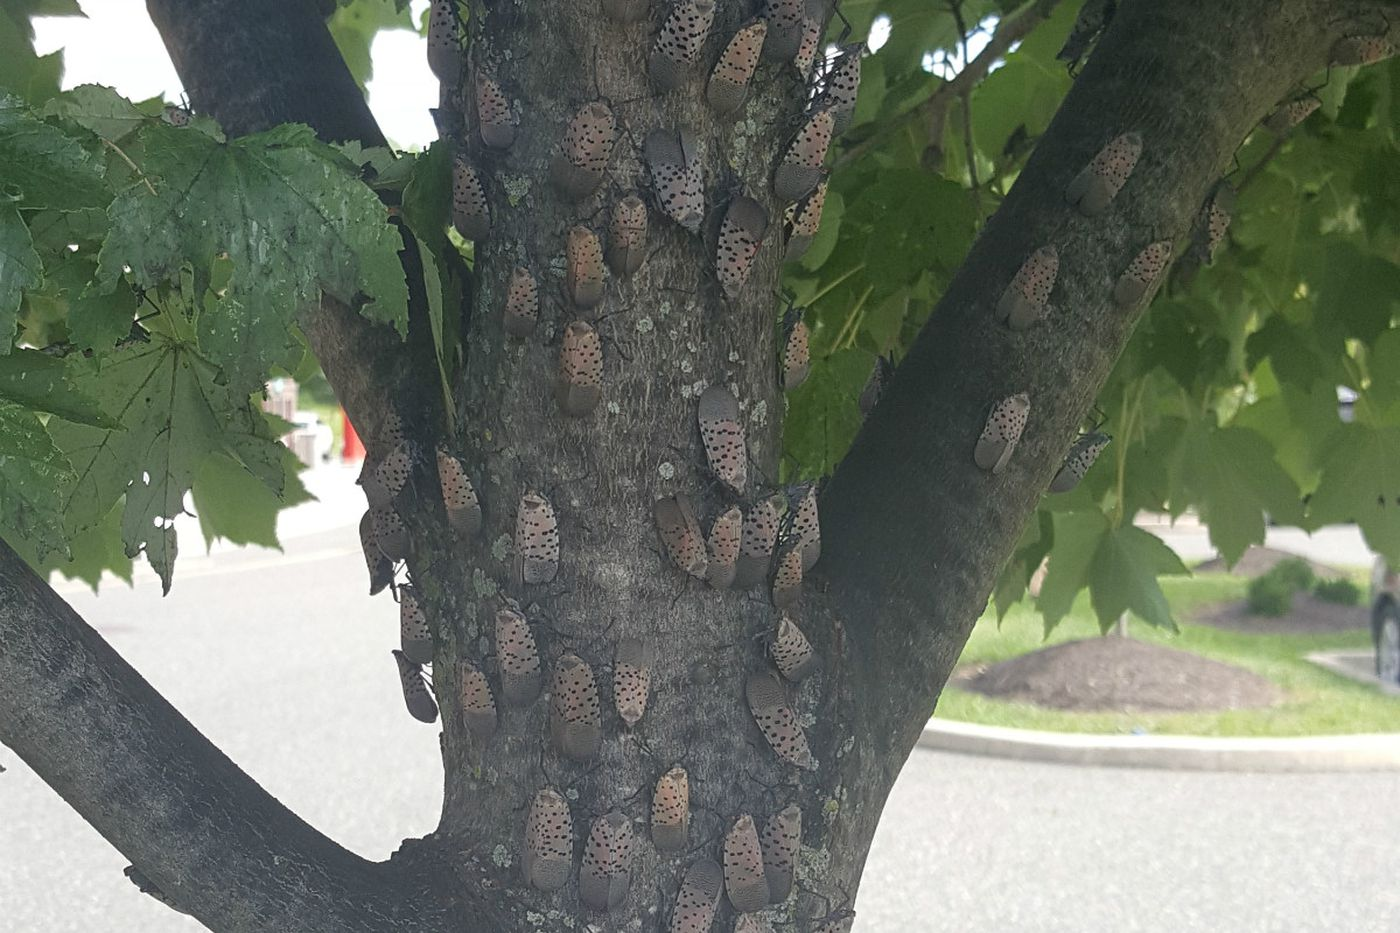 The invasion has begun: Dreaded spotted lanternfly lands in Philly